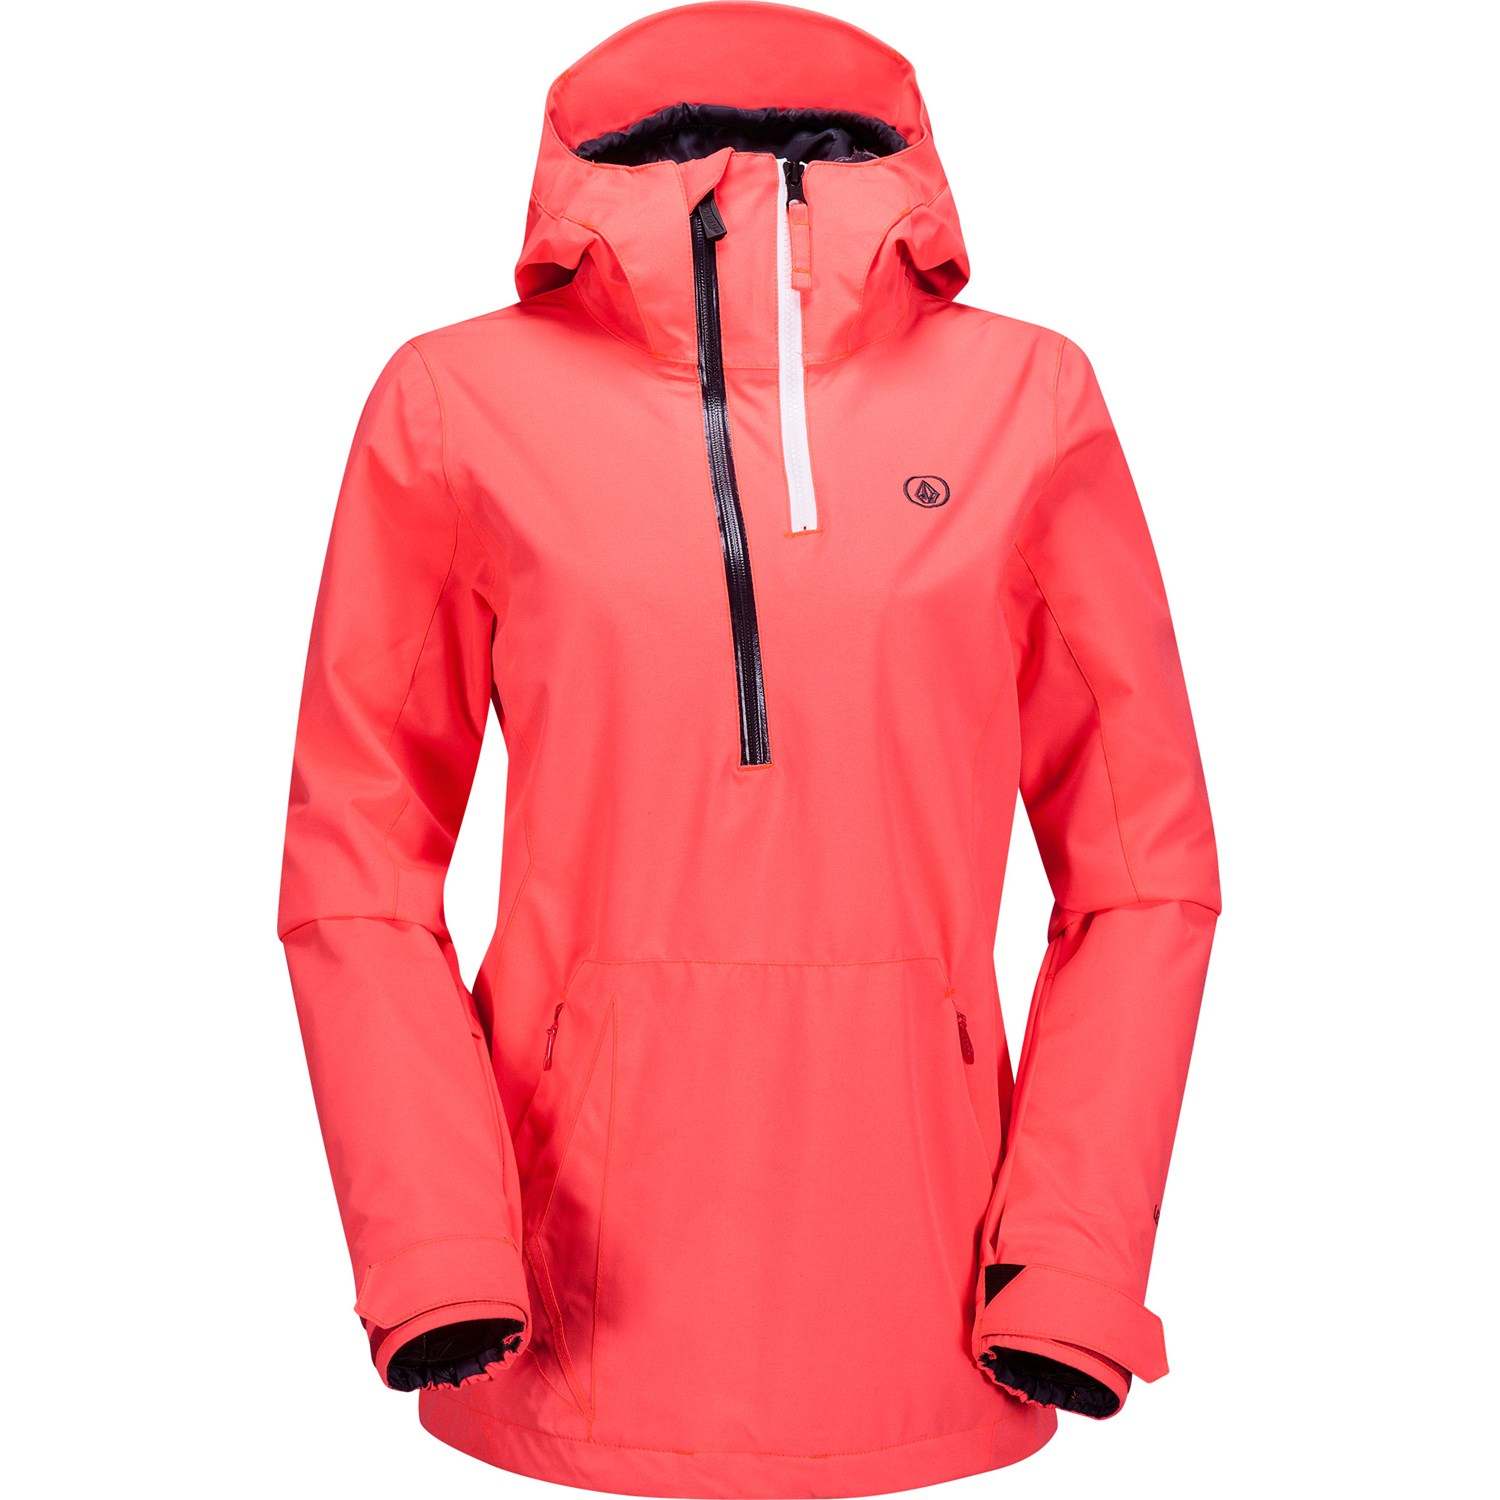 Volcom Scope Pullover Jacket - Women's | evo